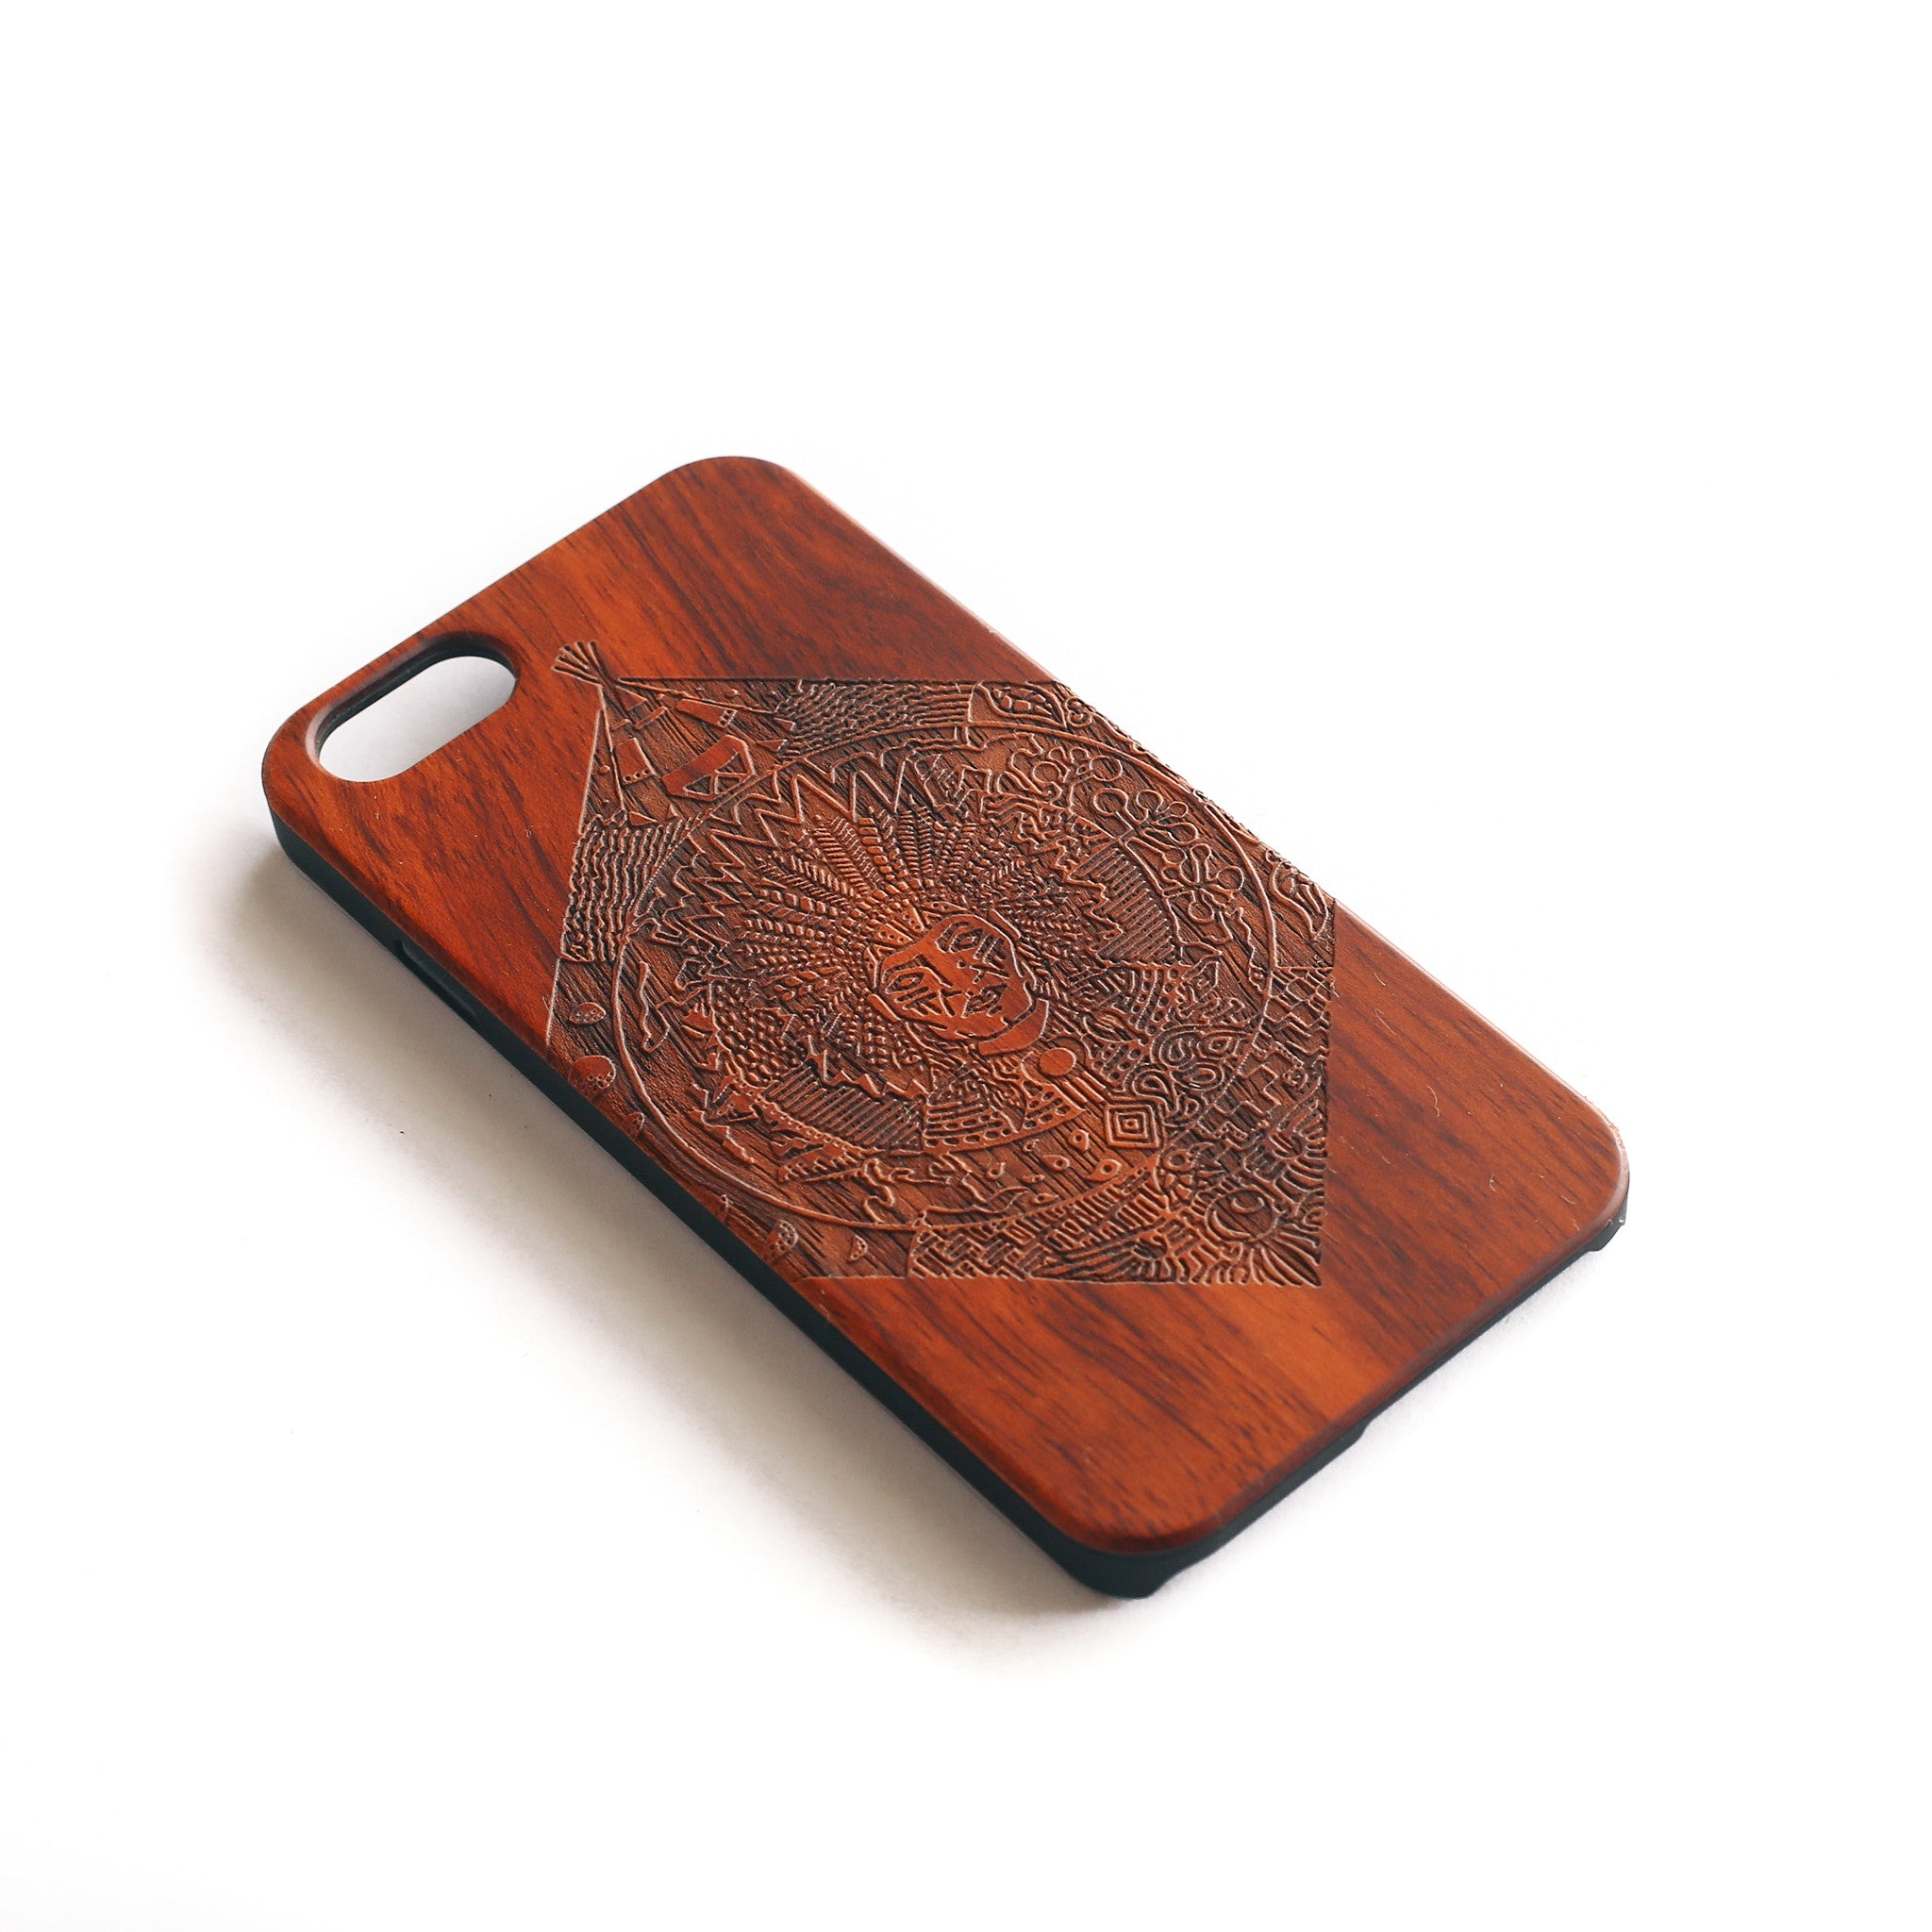 'Chief Red' iPhone Wood Case - SVNTY